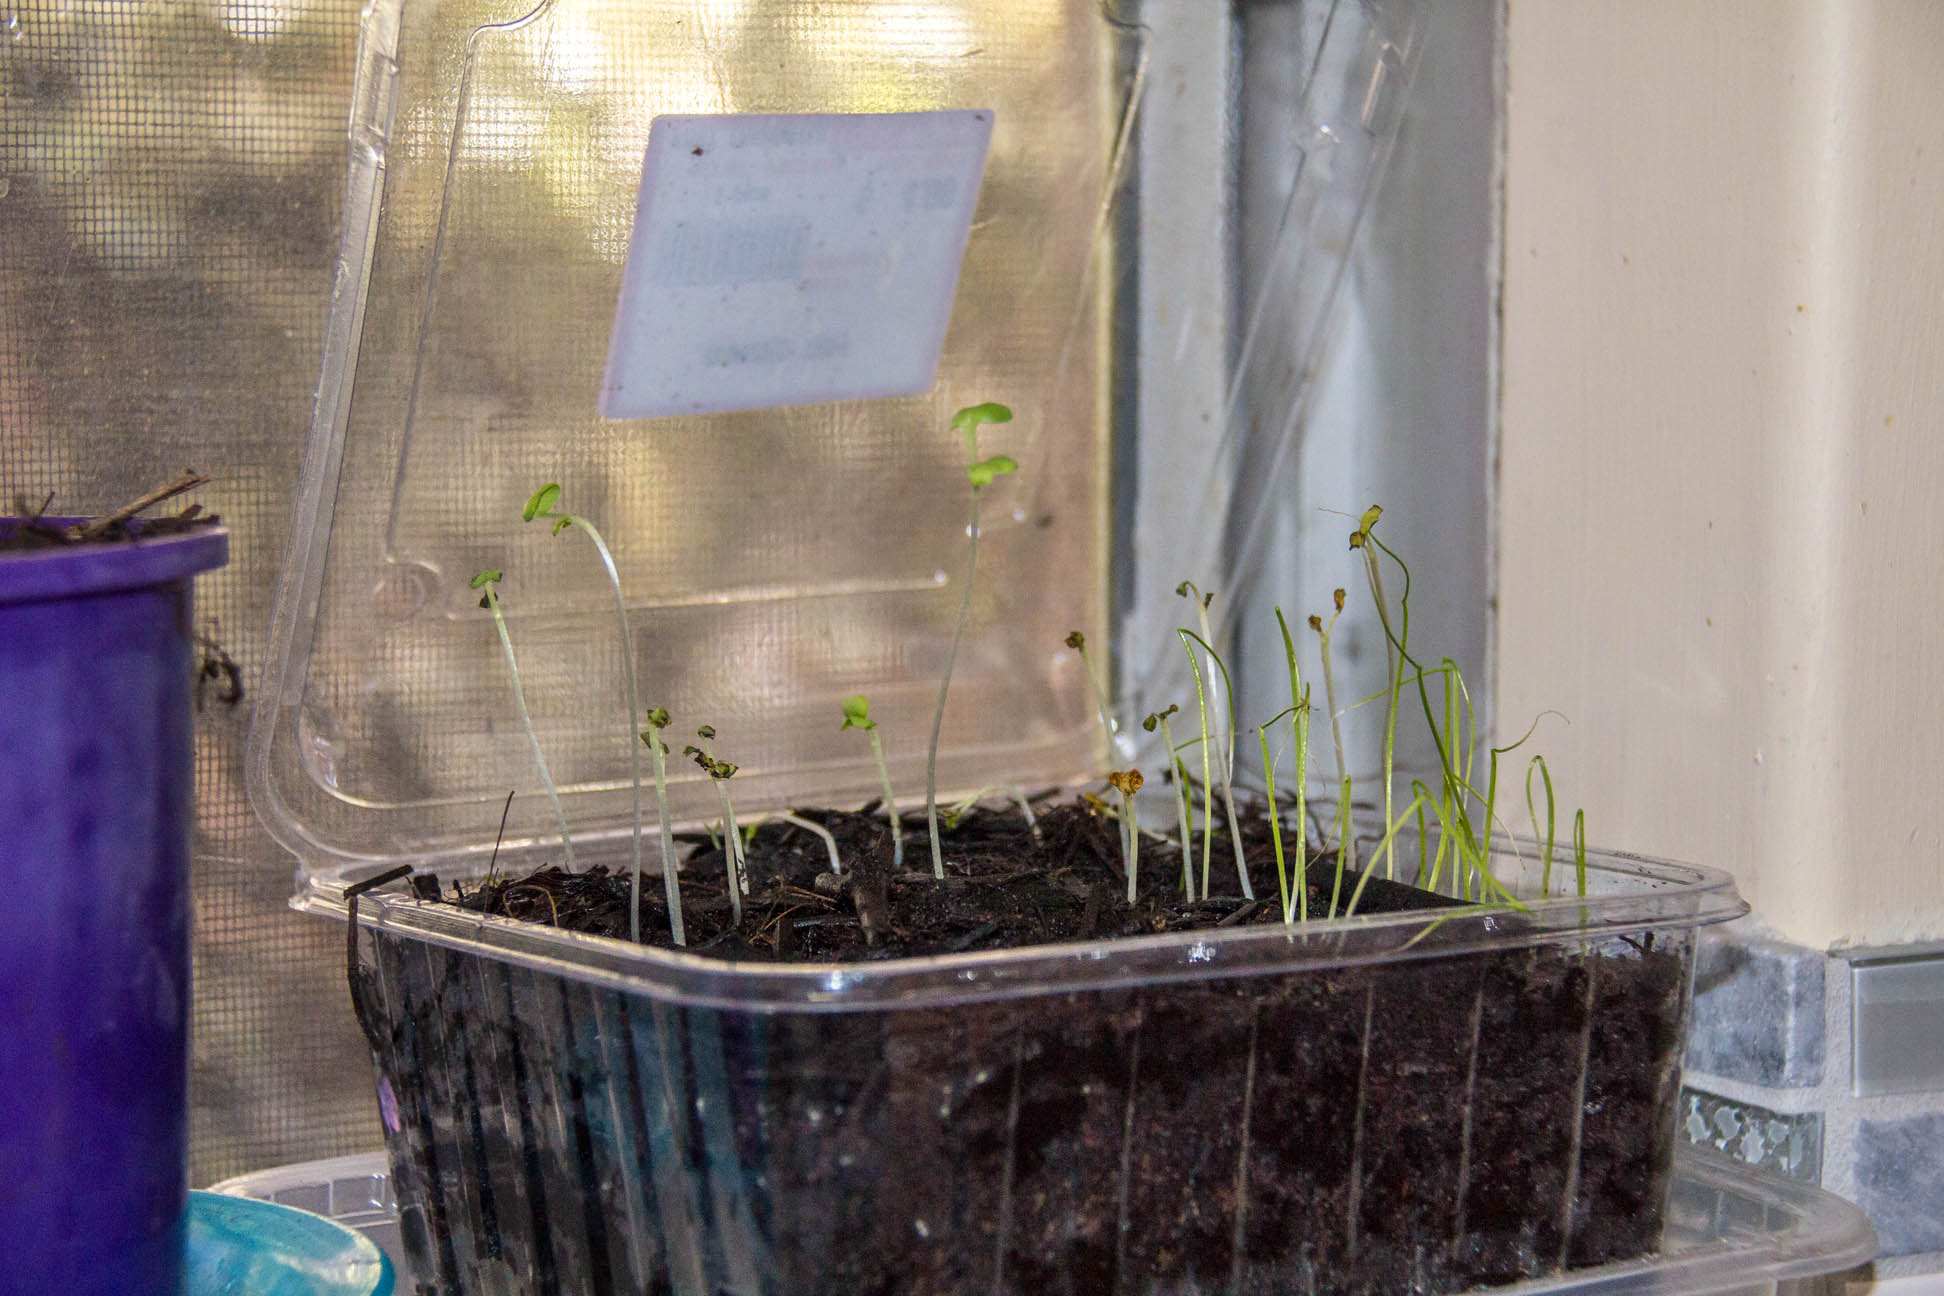 08/05/15 Day 15 The grass looking seedlings looks like they are struggling